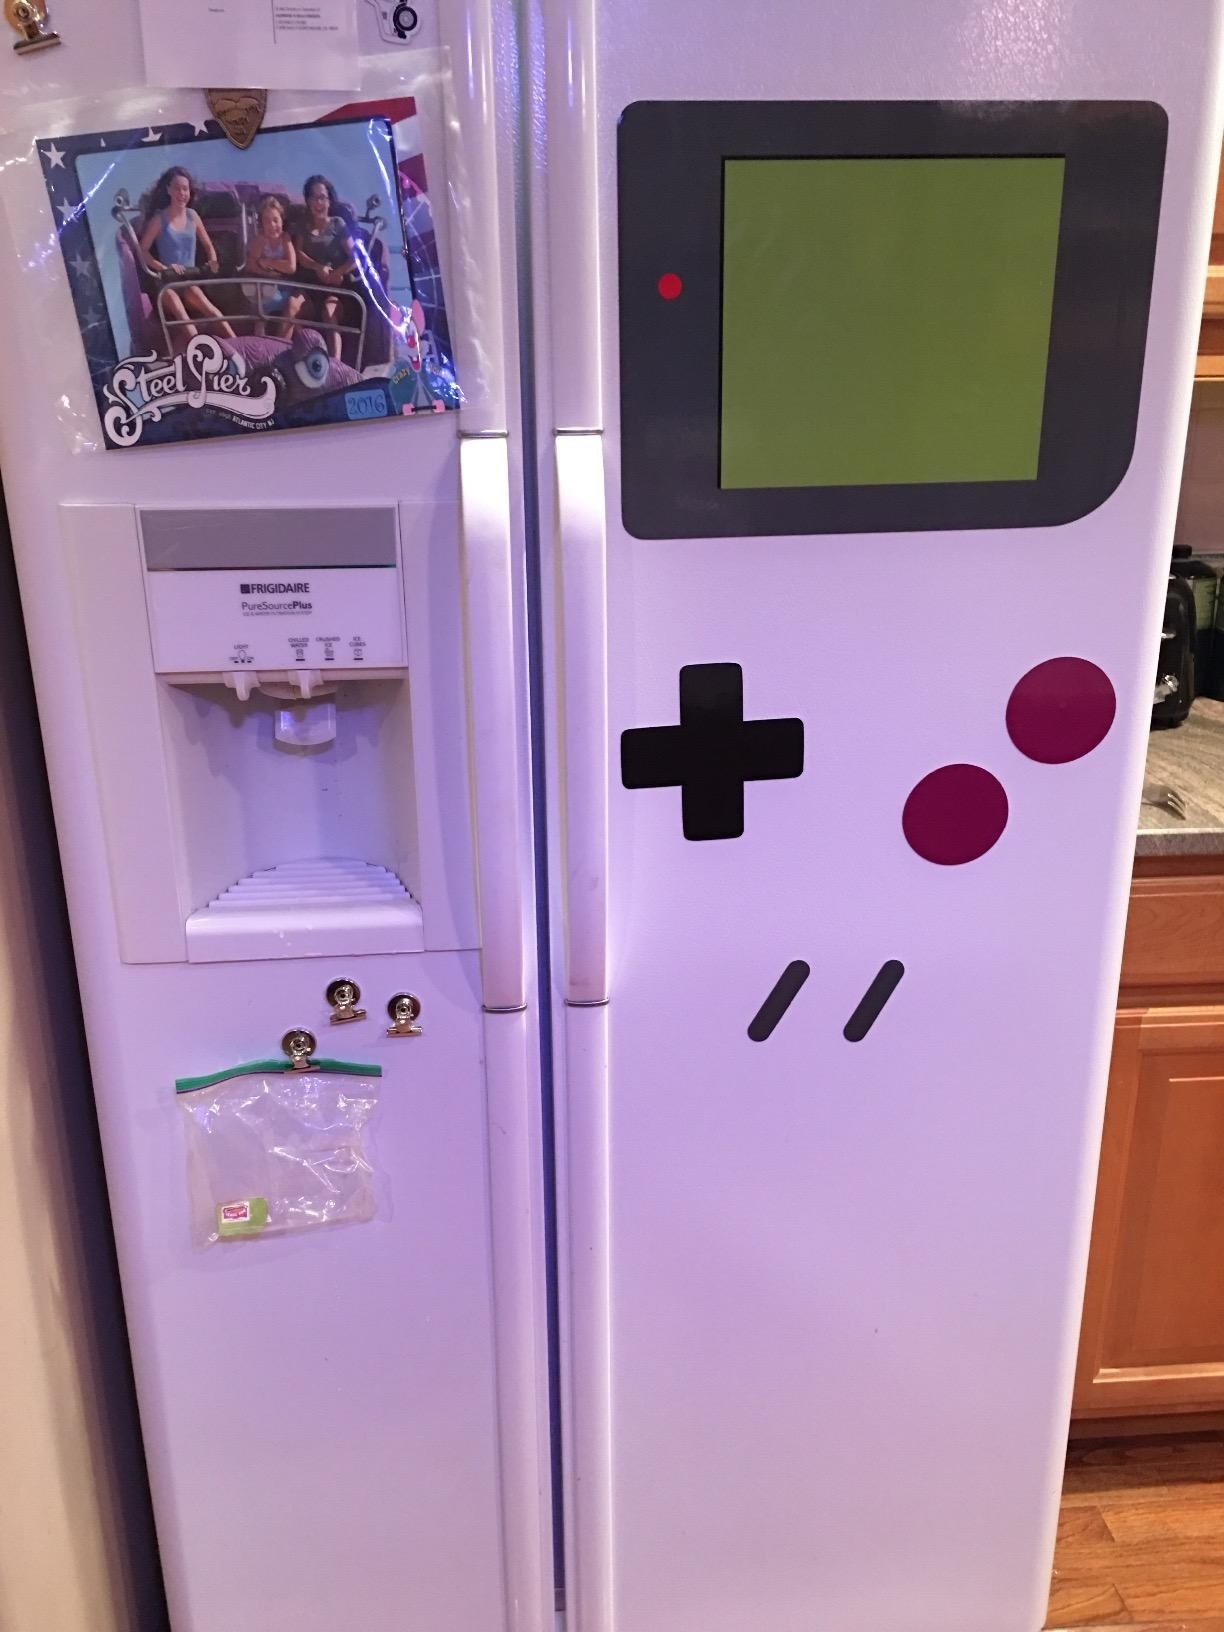 Magnets that have been arranged to make the fridge look like a Gameboy